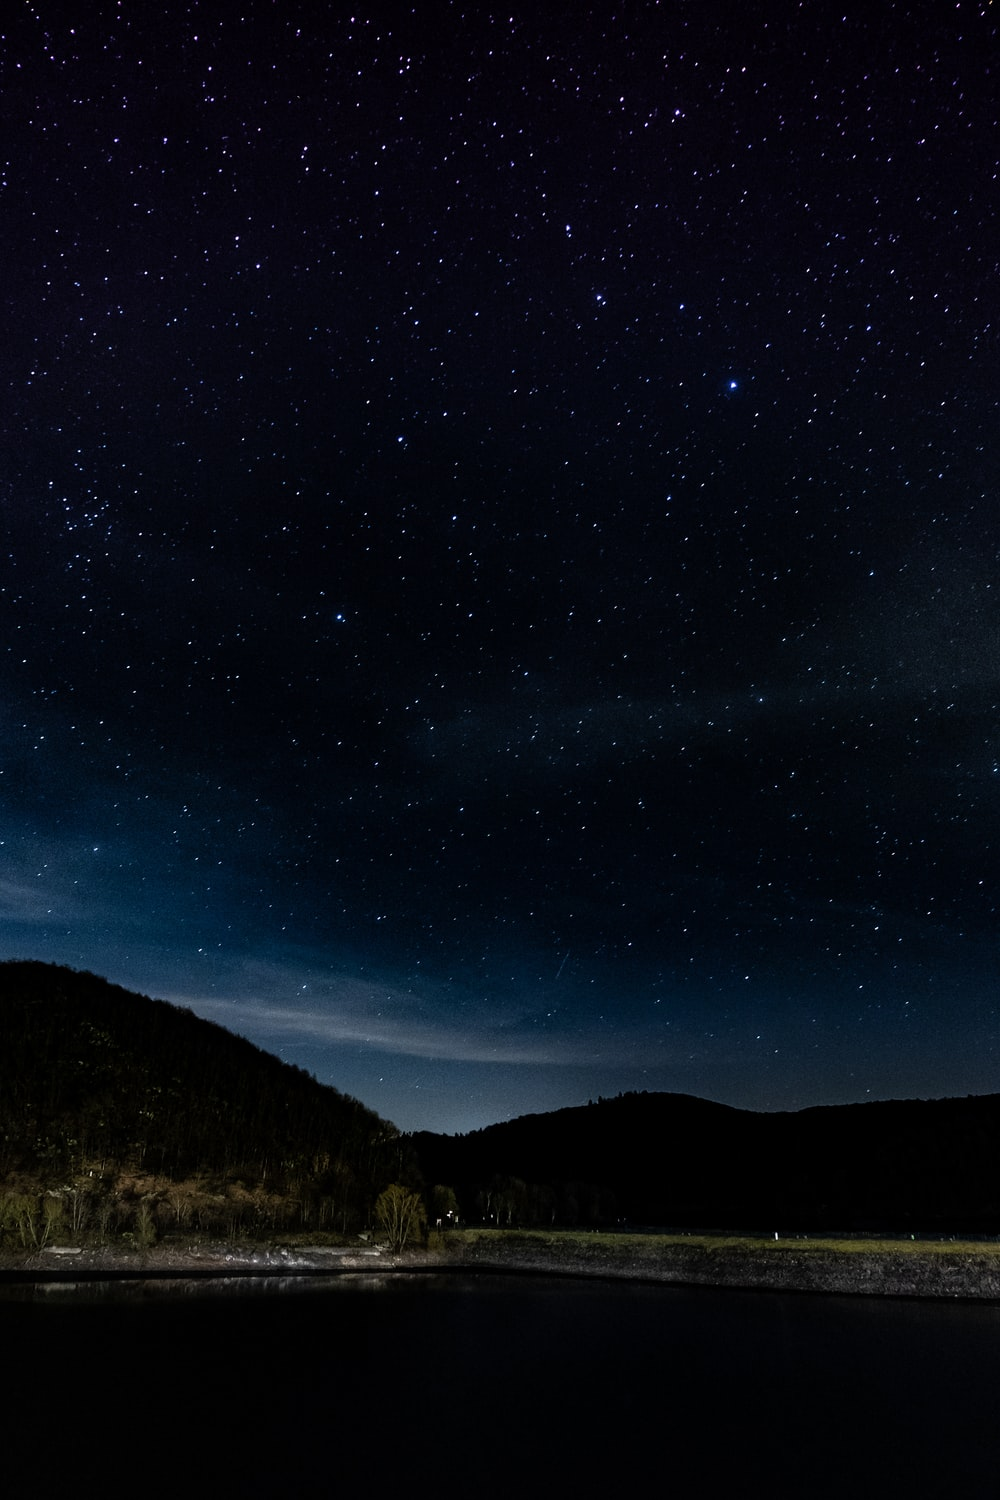 mountains under starry sky during nighttime